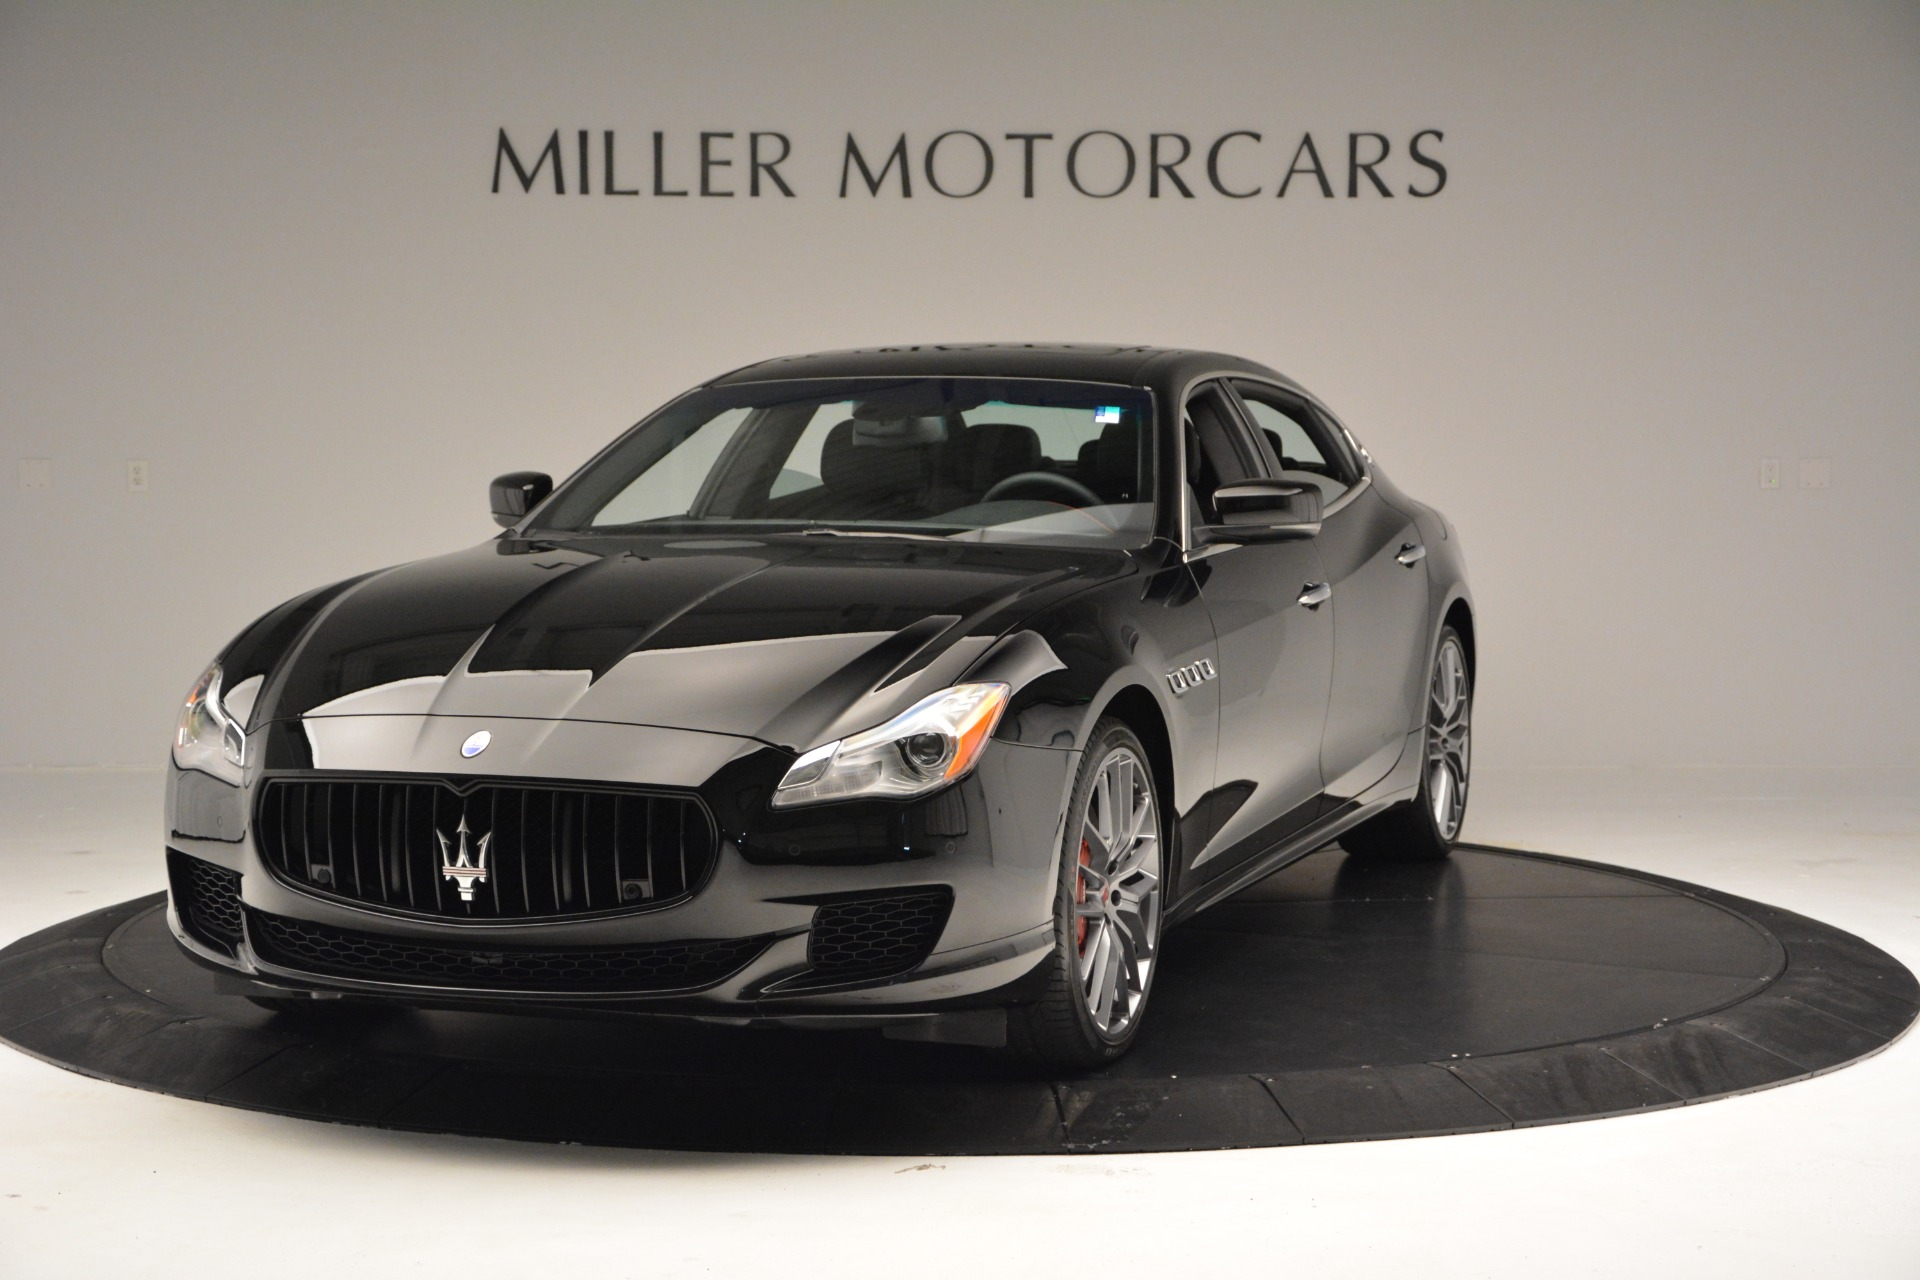 Used 2015 Maserati Quattroporte GTS for sale Sold at Bentley Greenwich in Greenwich CT 06830 1